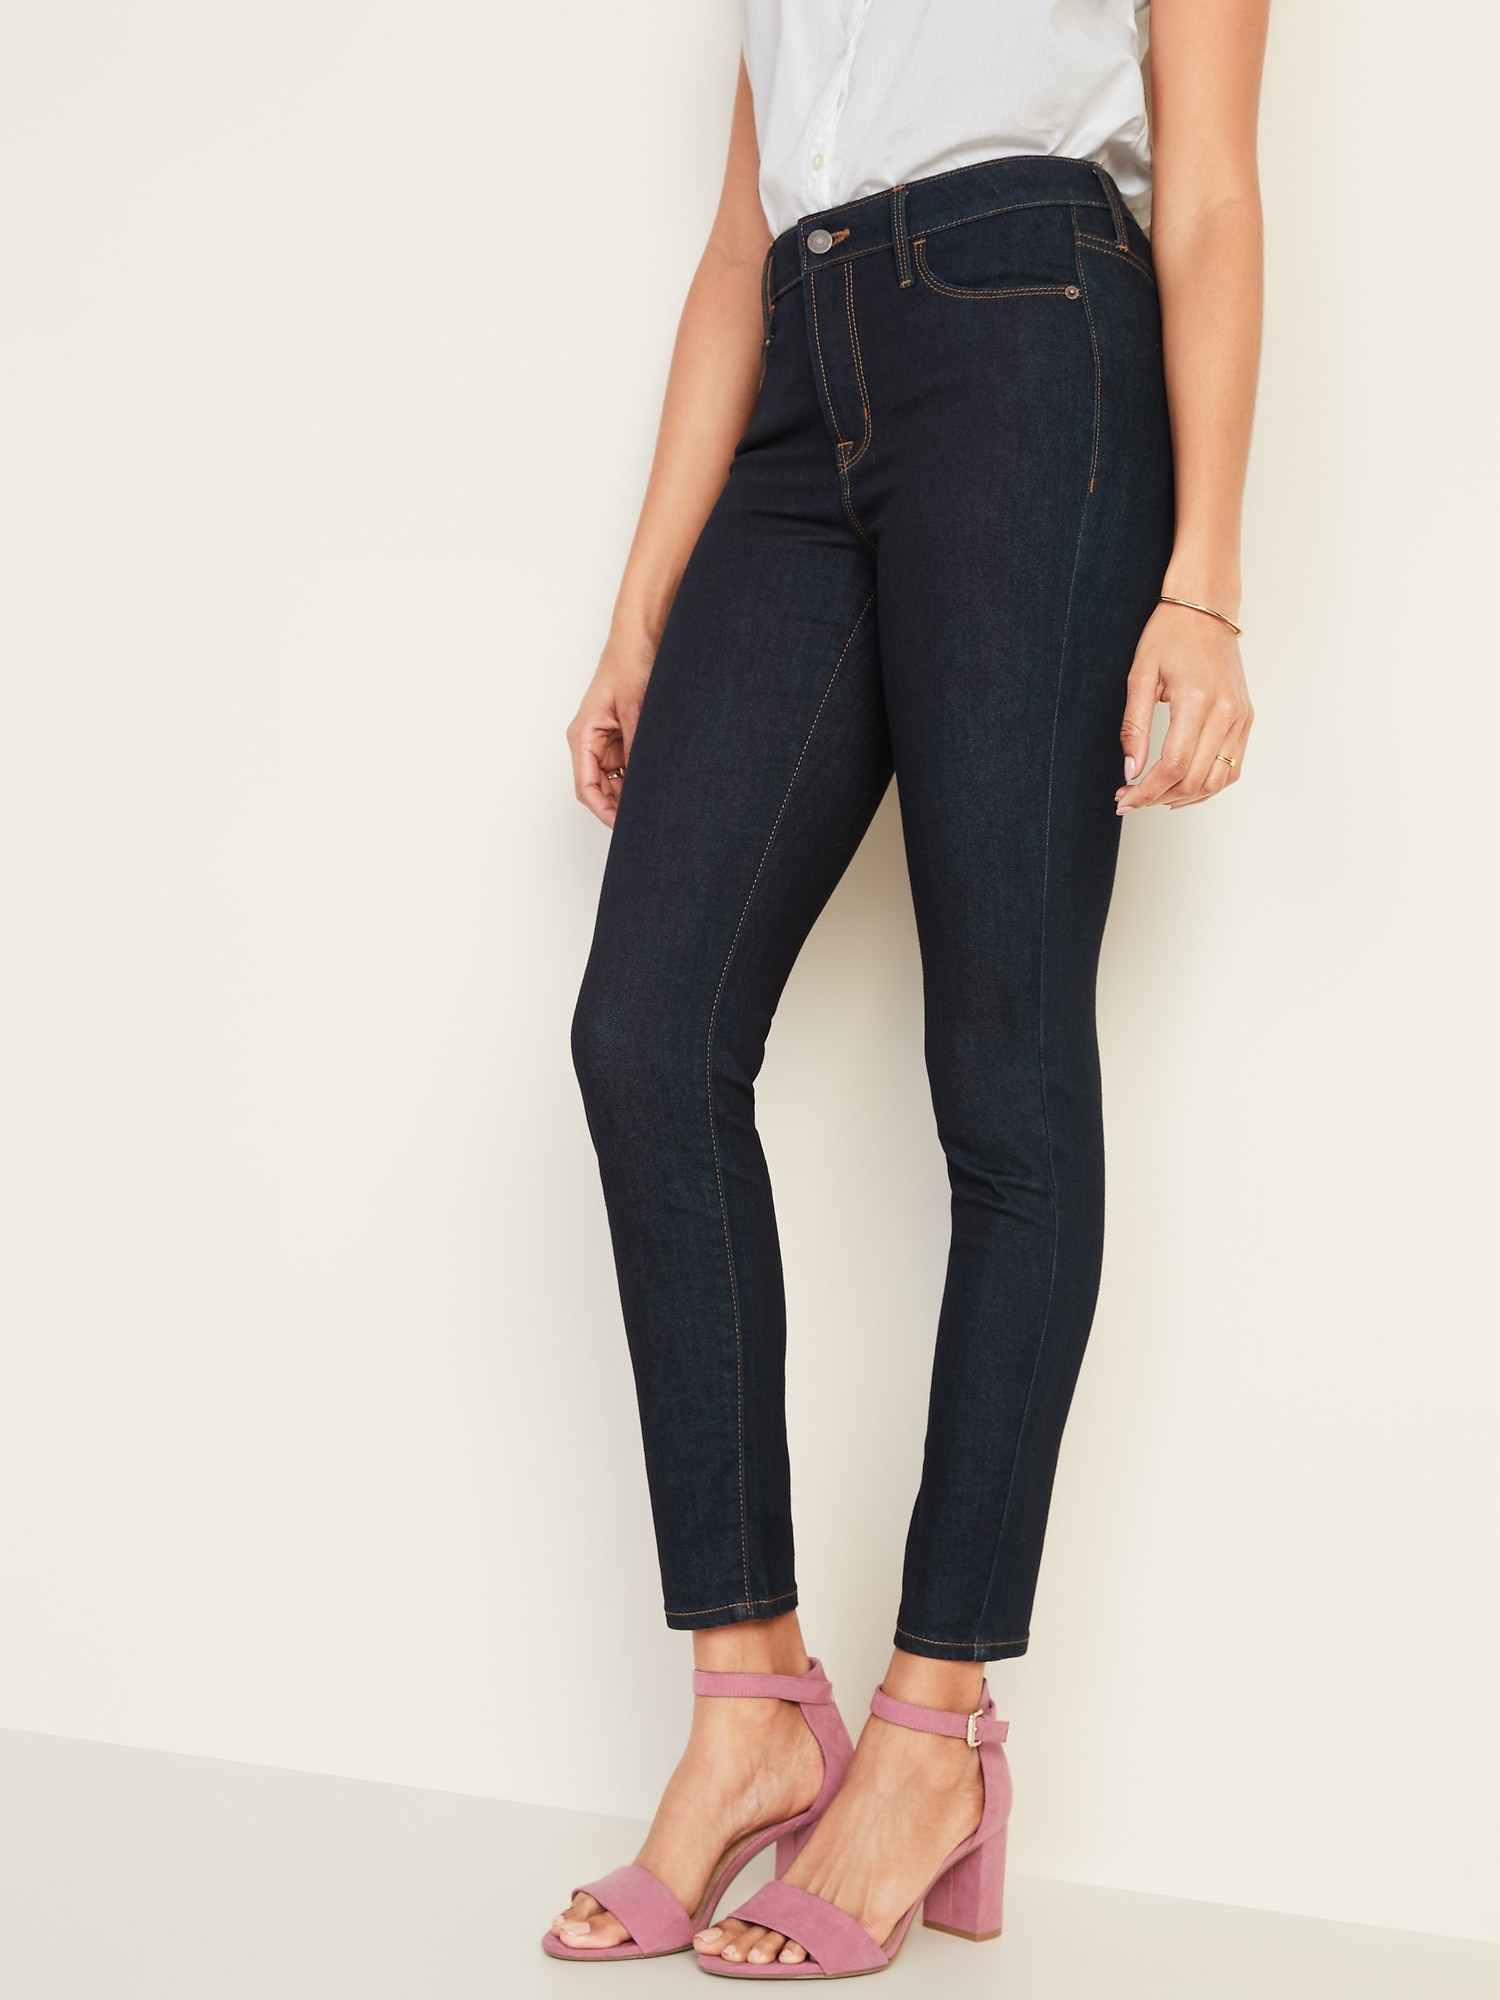 d6942f42440 High-Rise Secret-Slim Pockets Rockstar Super Skinny Jeans for Women ...